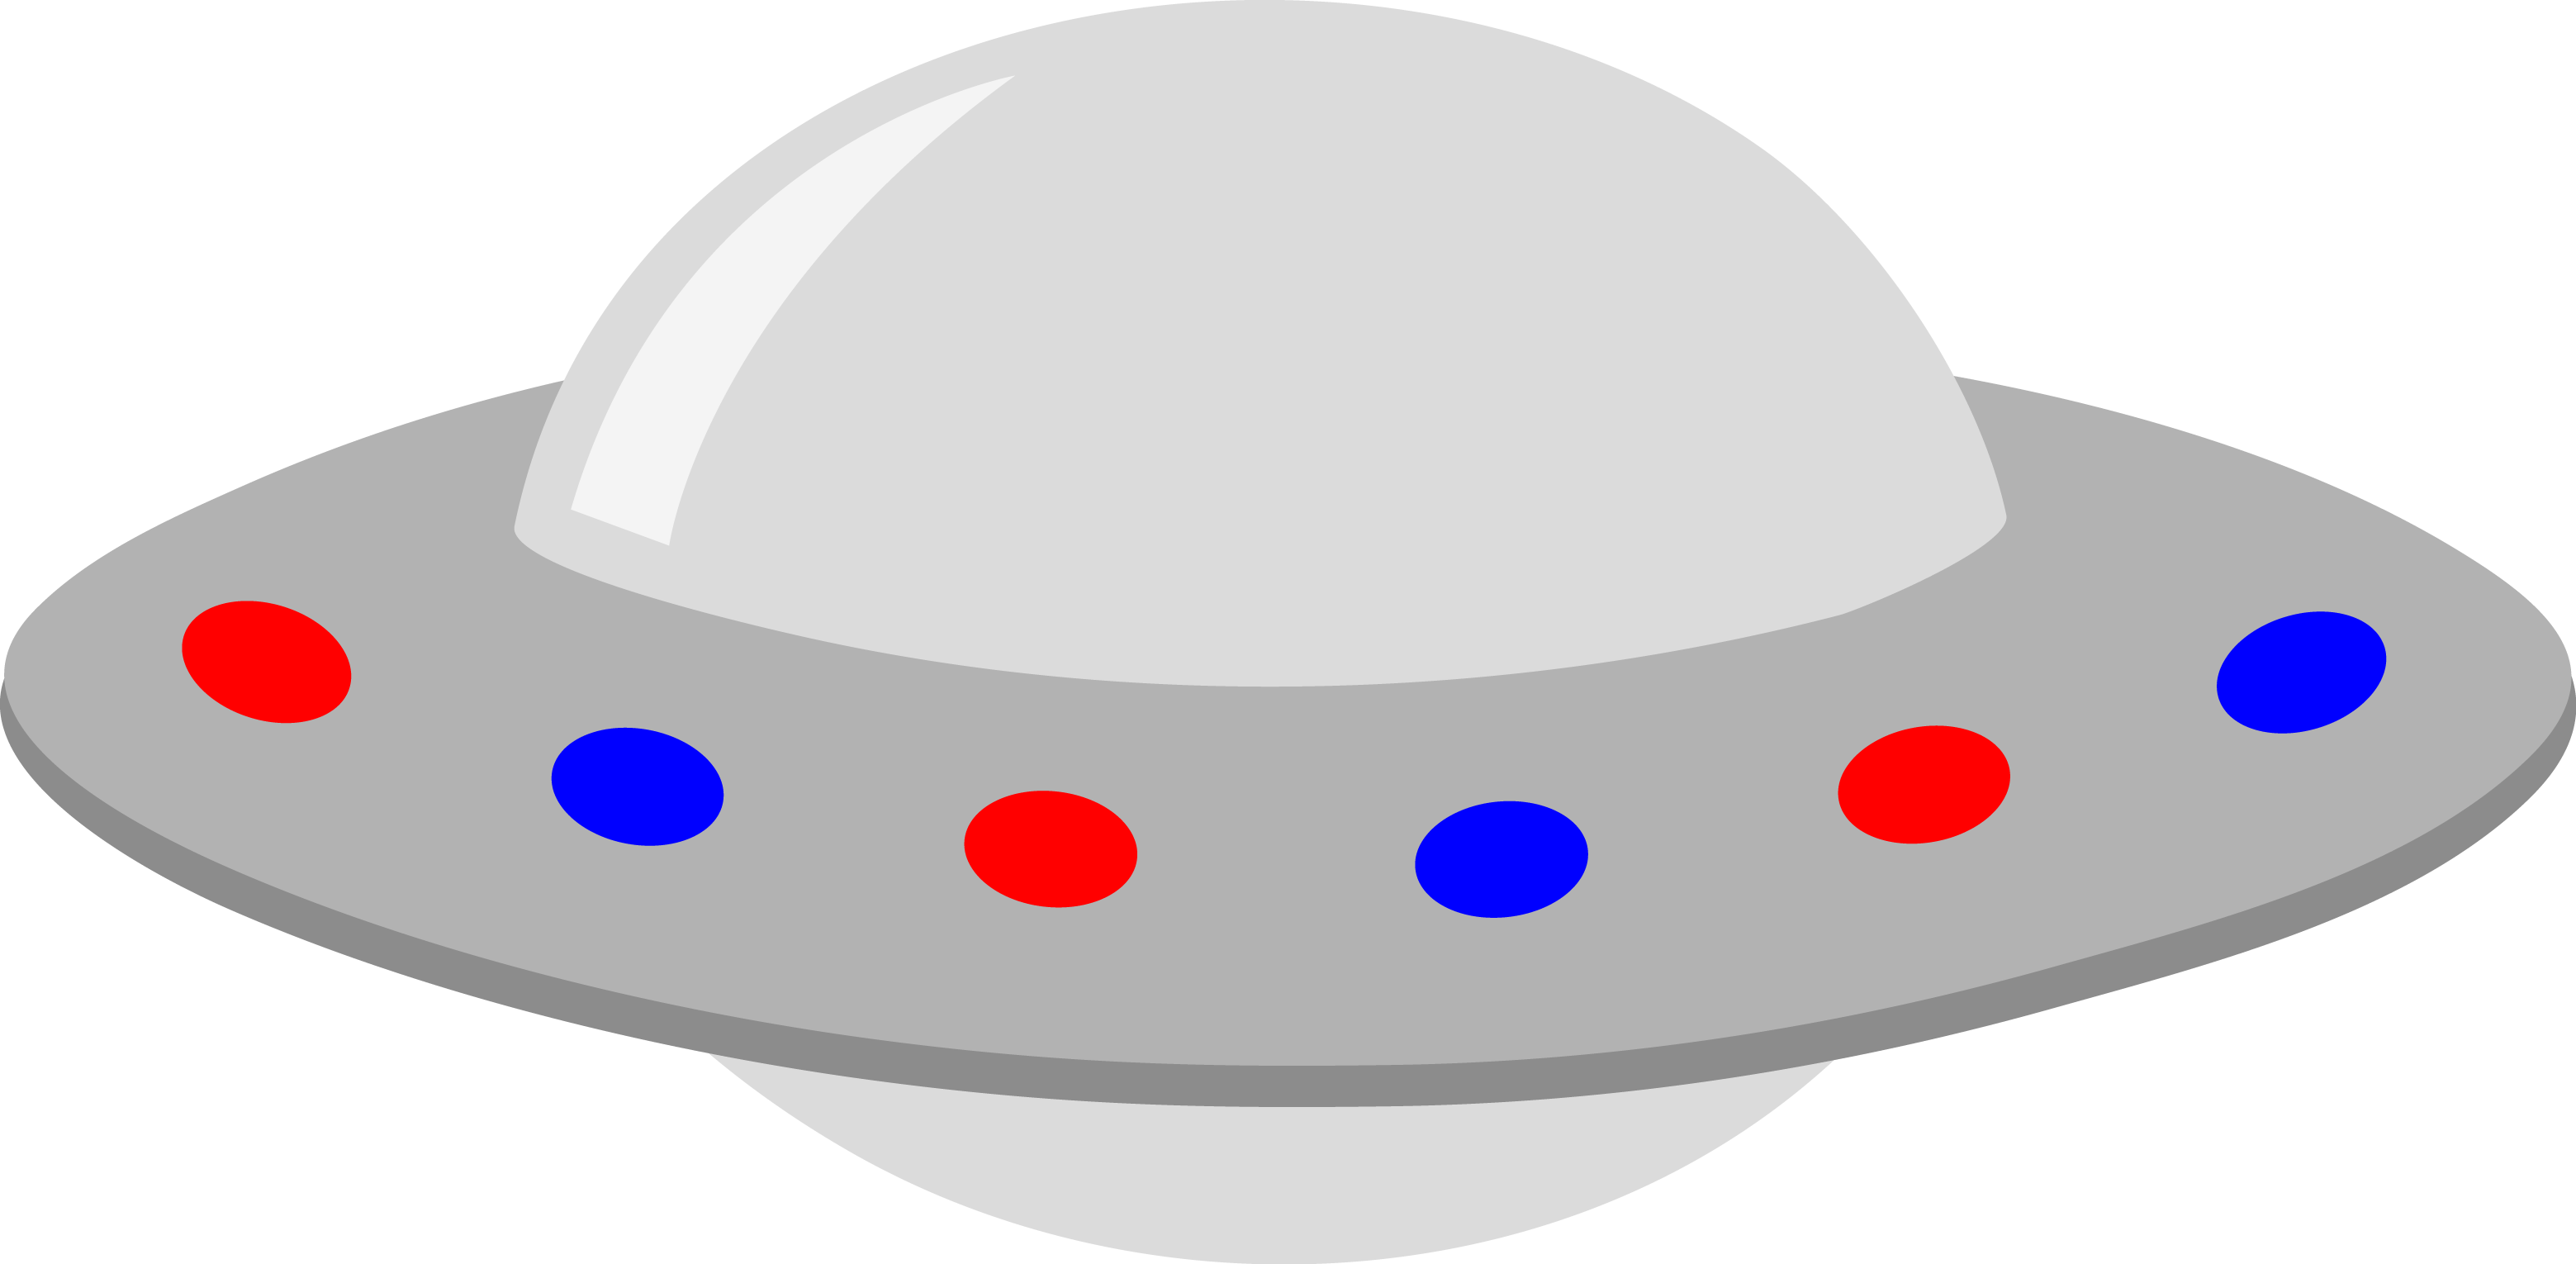 3119x1530 Silver Ufo With Red And Blue Lights